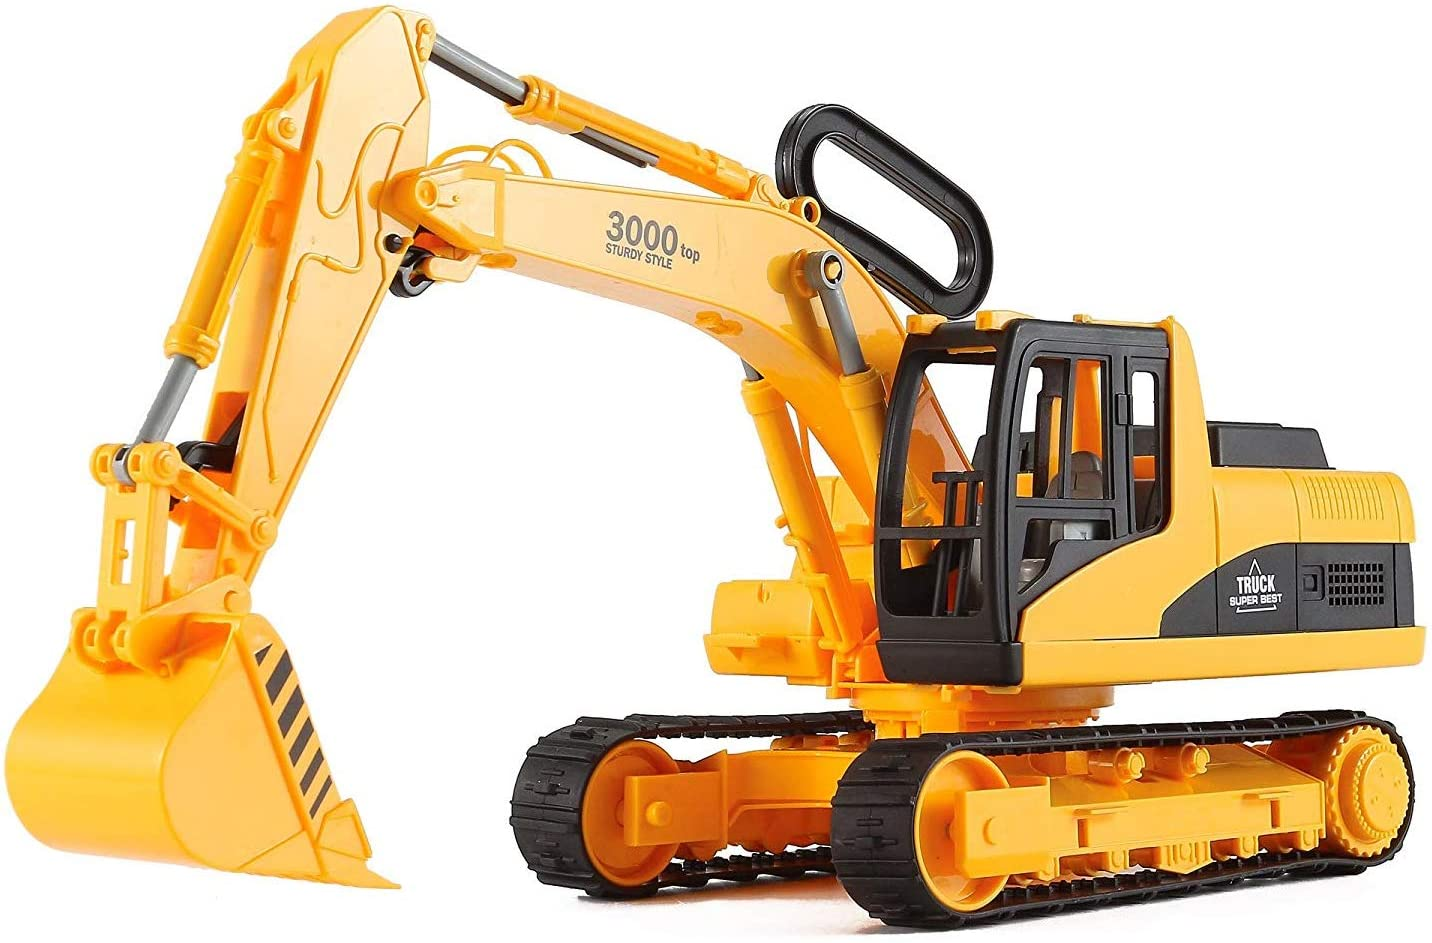 Liberty Imports Oversized Construction Excavator Truck Toy for Kids with Shovel Arm Claw